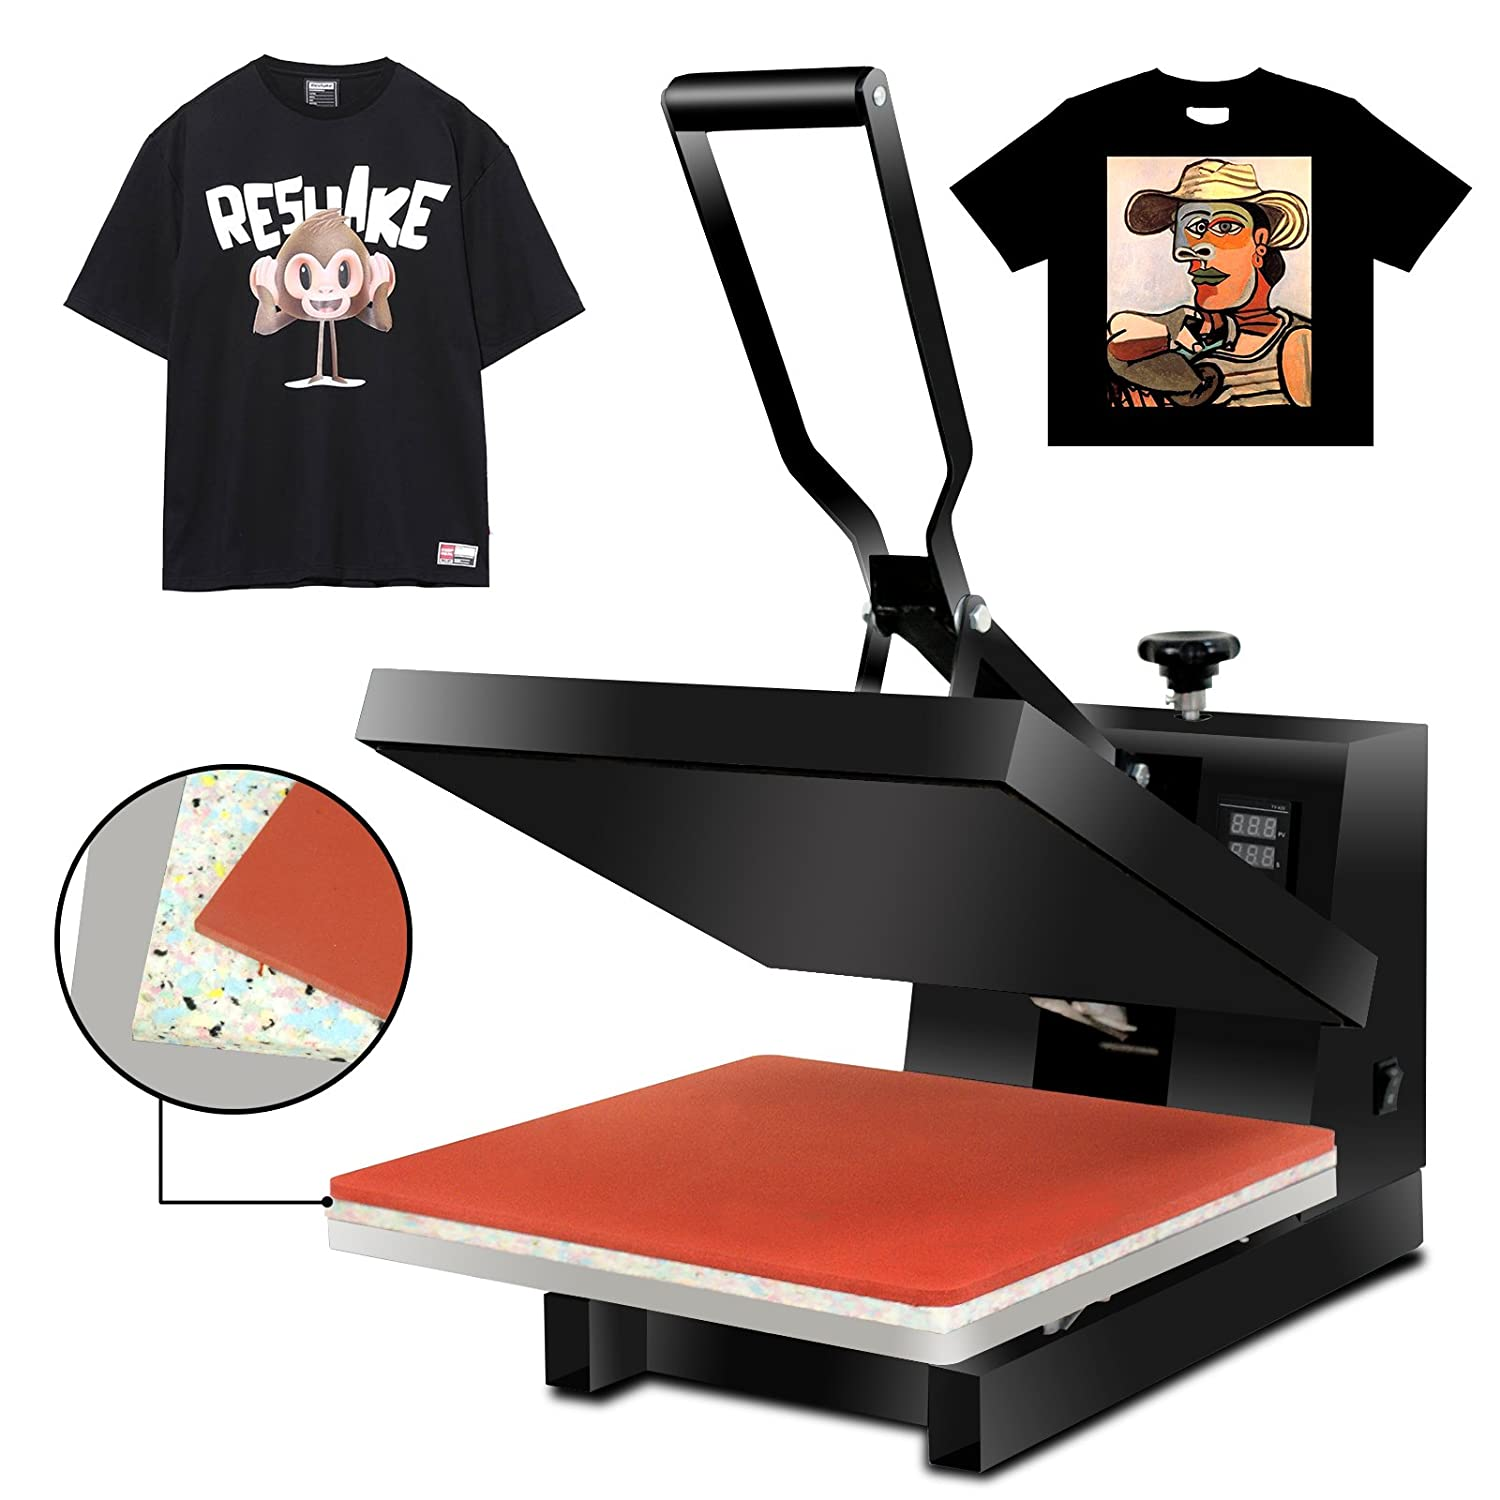 Super Deal 15 X 15 Digital Heat Press Clamshell Transfer Machine for T-Shirt